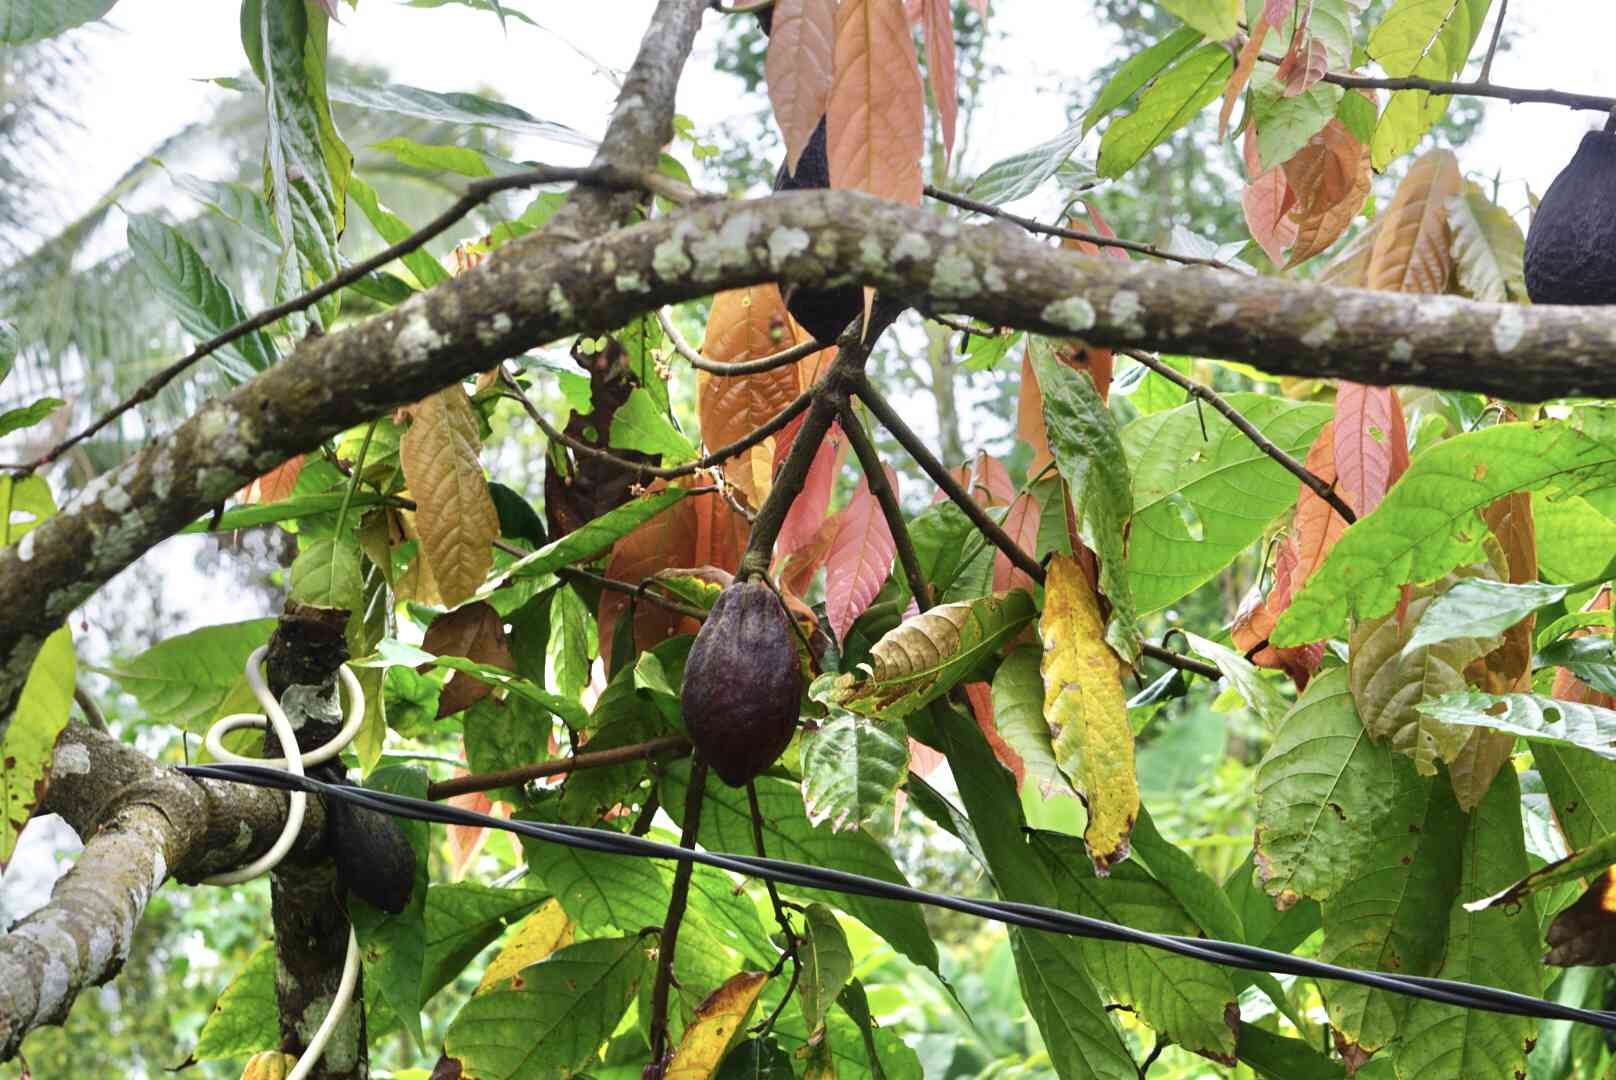 Cacao tree branches with green and brown leaves with cacao bean in the middle above black wire